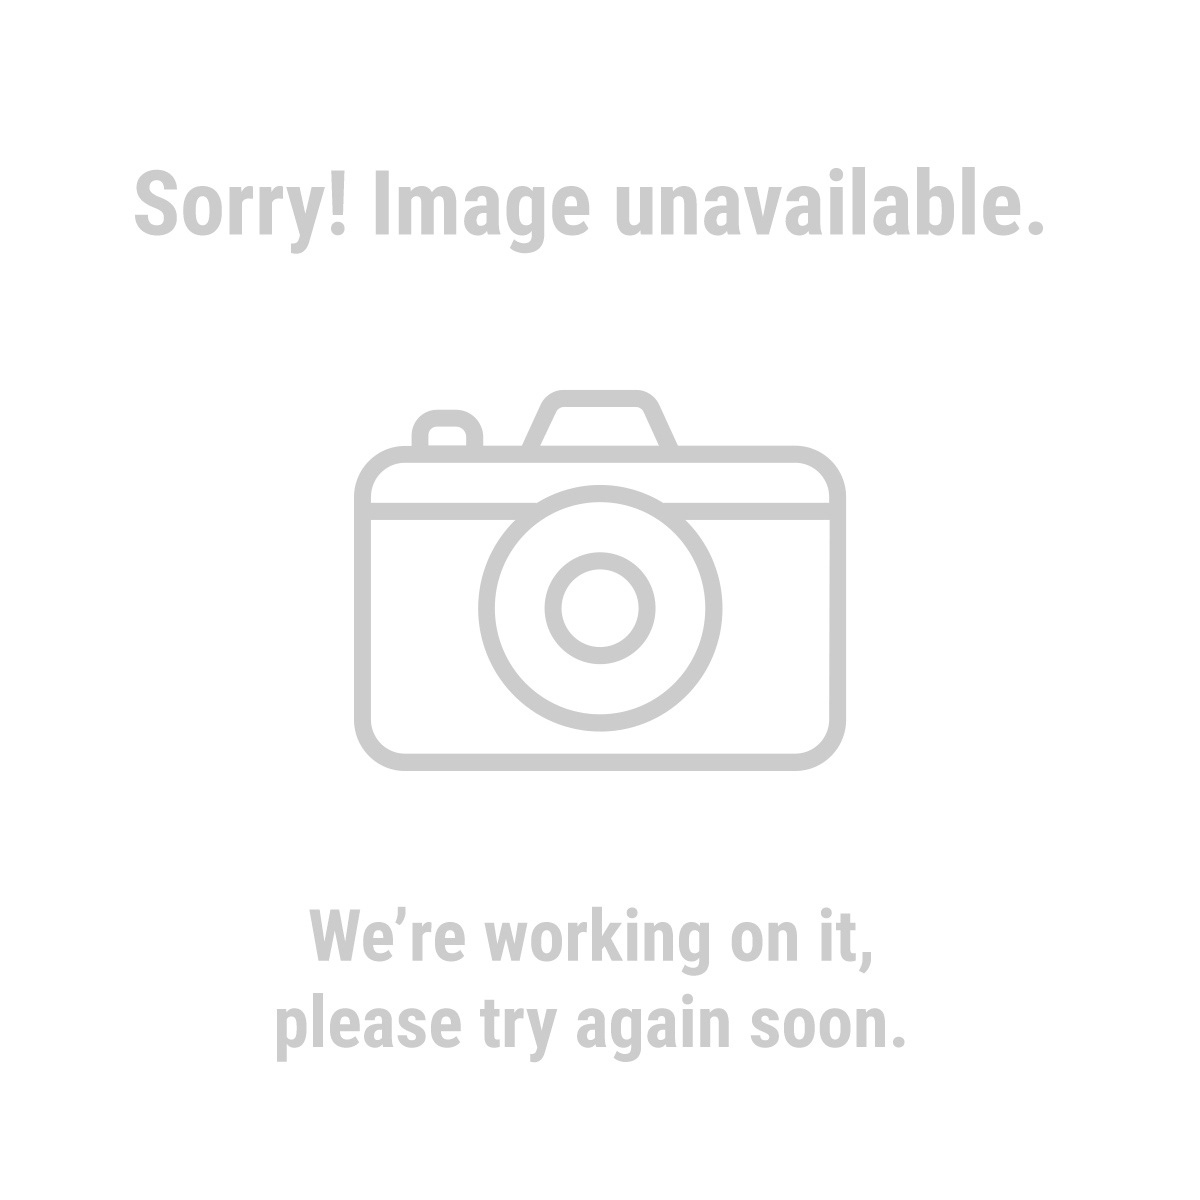 Haul Master Automotive 69591 1000 Lb. Steel Loading Ramps, Set of Two